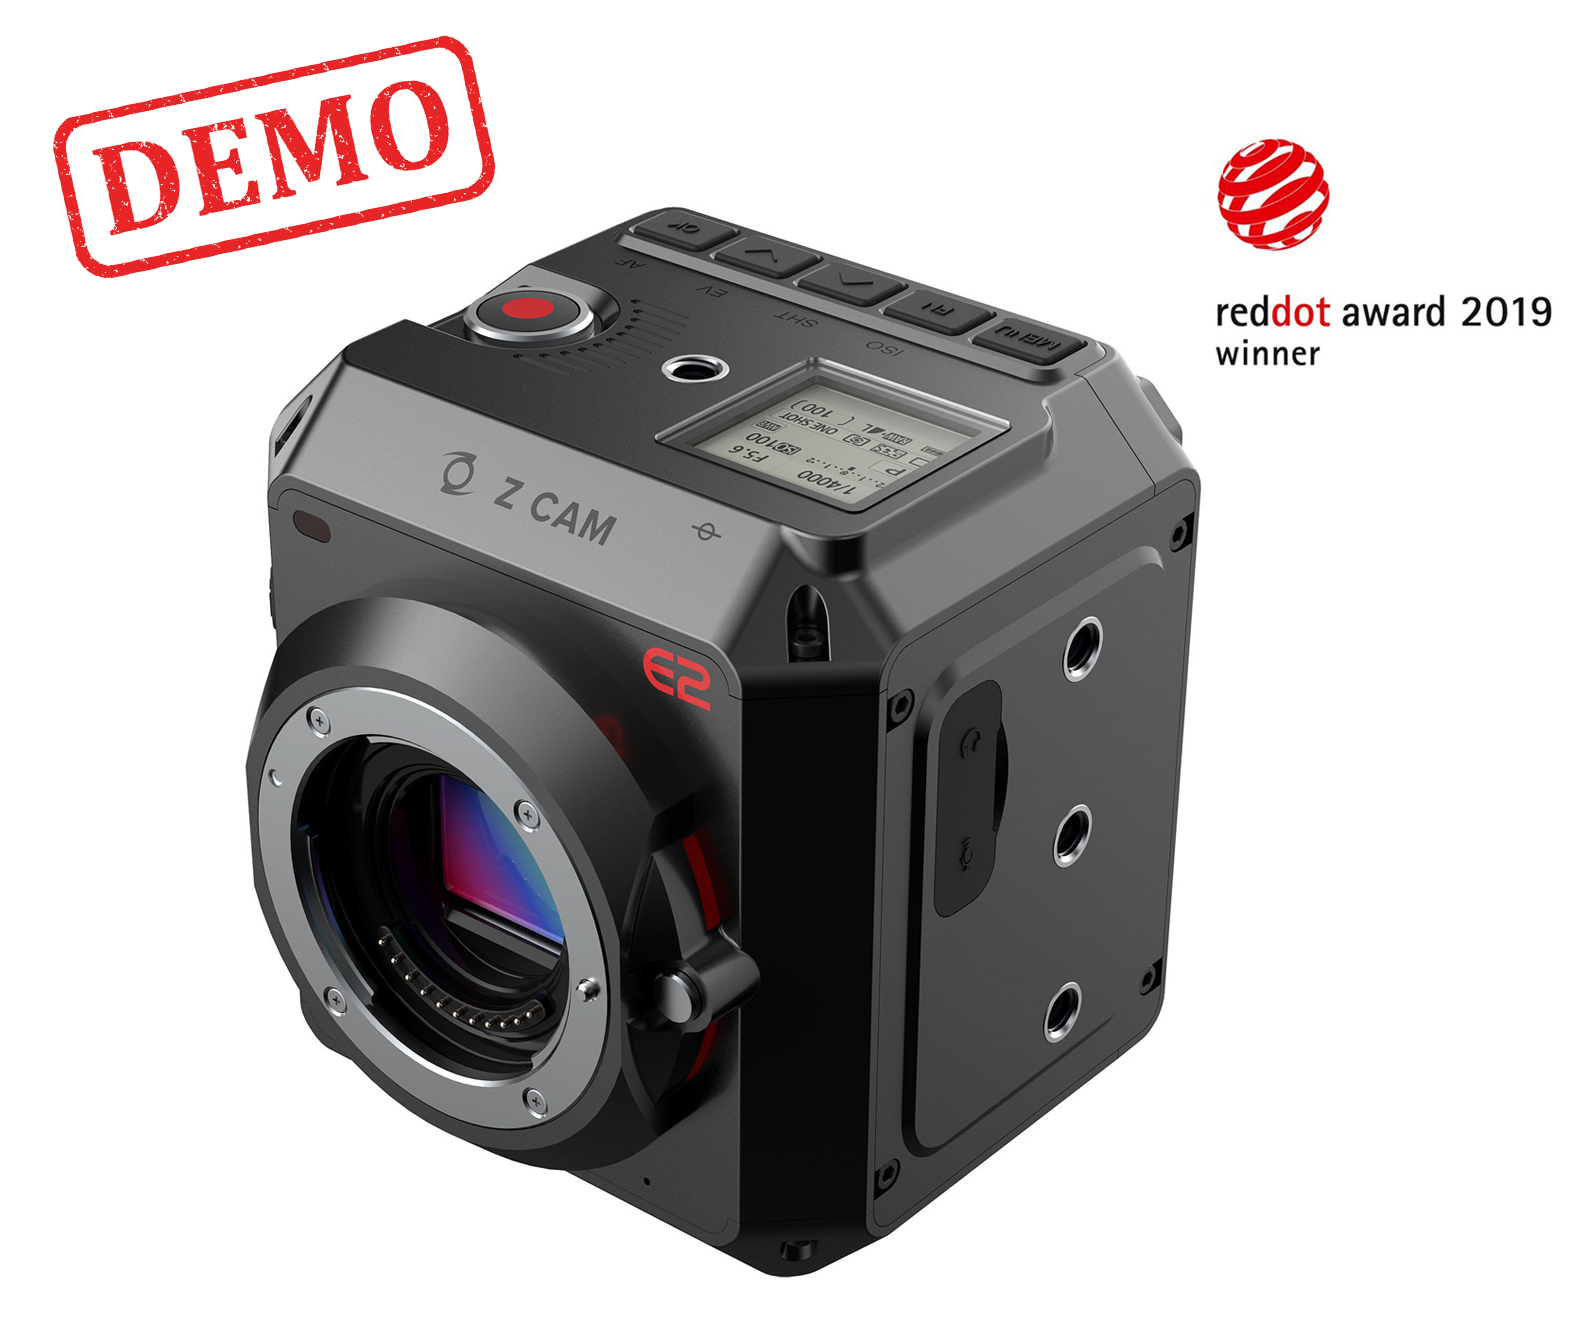 DEMO - Z CAM E2 Professional 4K/160p CINEMA CAMERA (MFT)